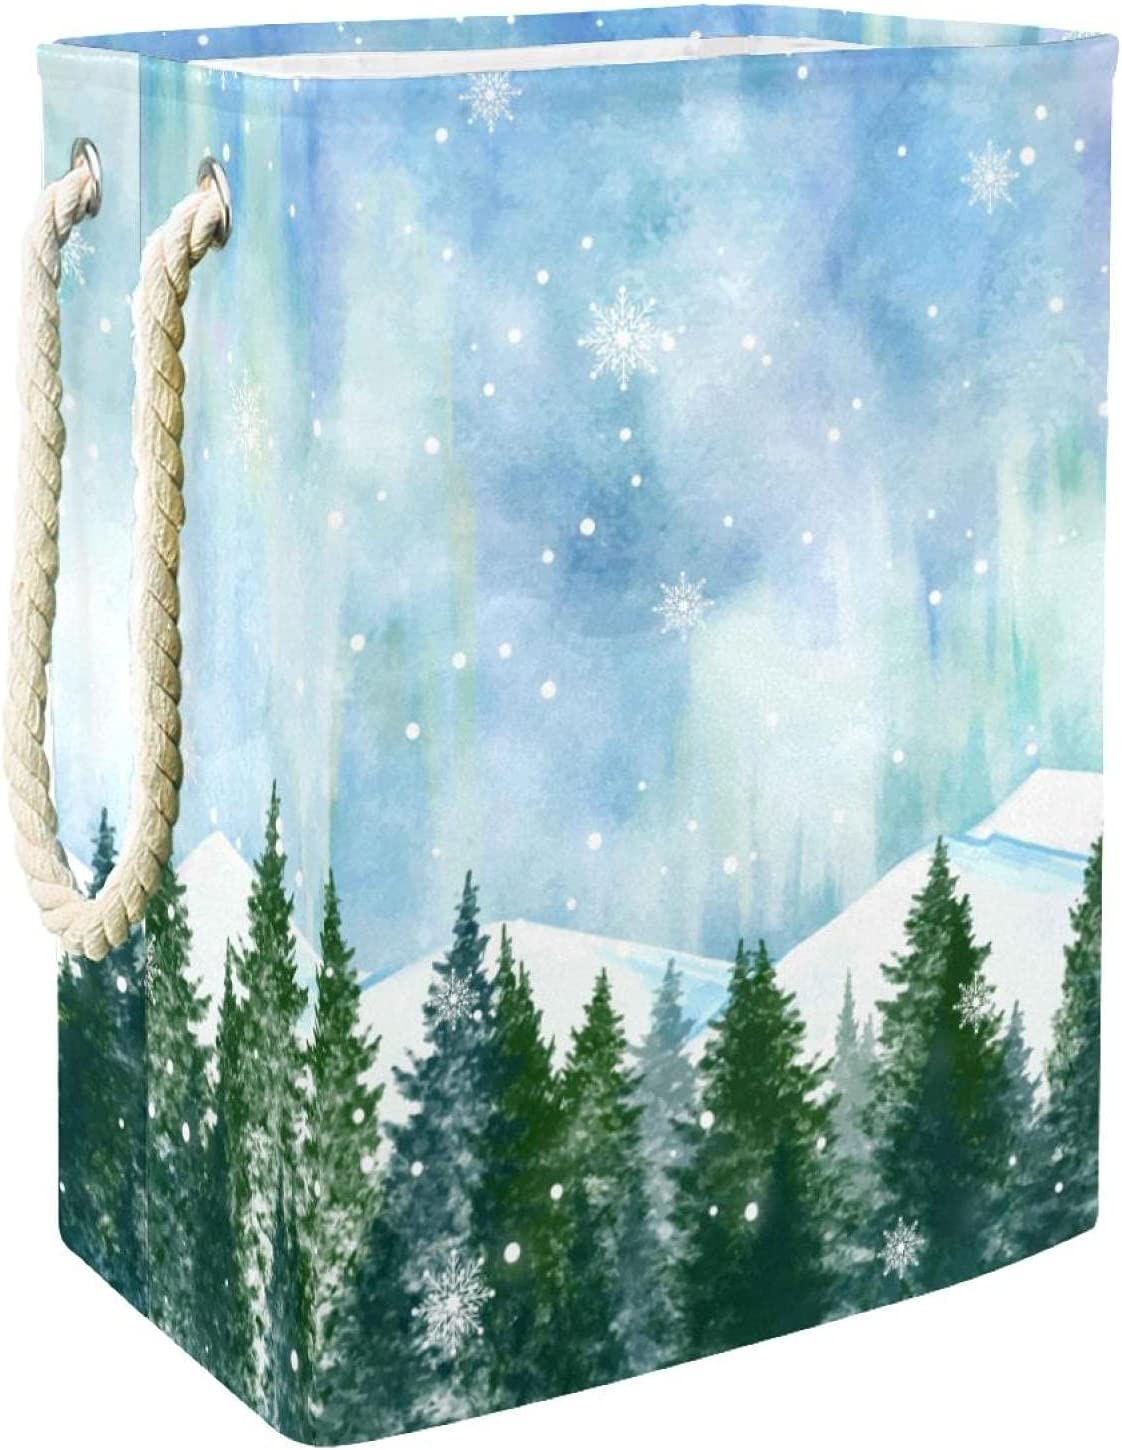 Inhomer Max 90% OFF Laundry Hamper Snowy Laundr Seattle Mall Landscape Winter Collapsible